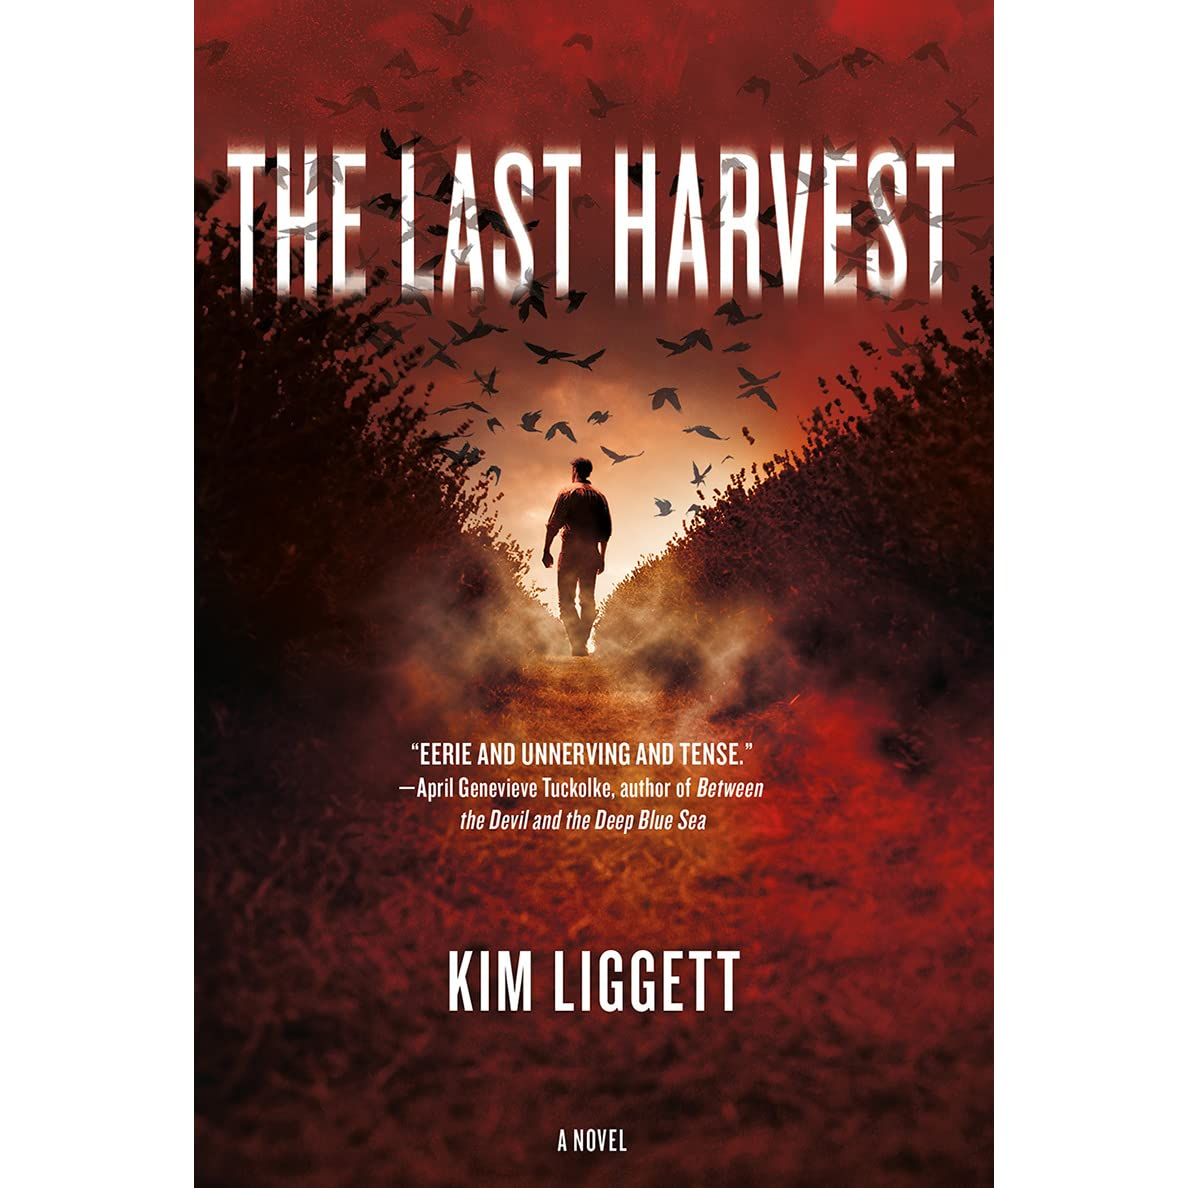 The Last Harvest By Kim Liggett Parfum Mobil Karakter Line 1st Edition